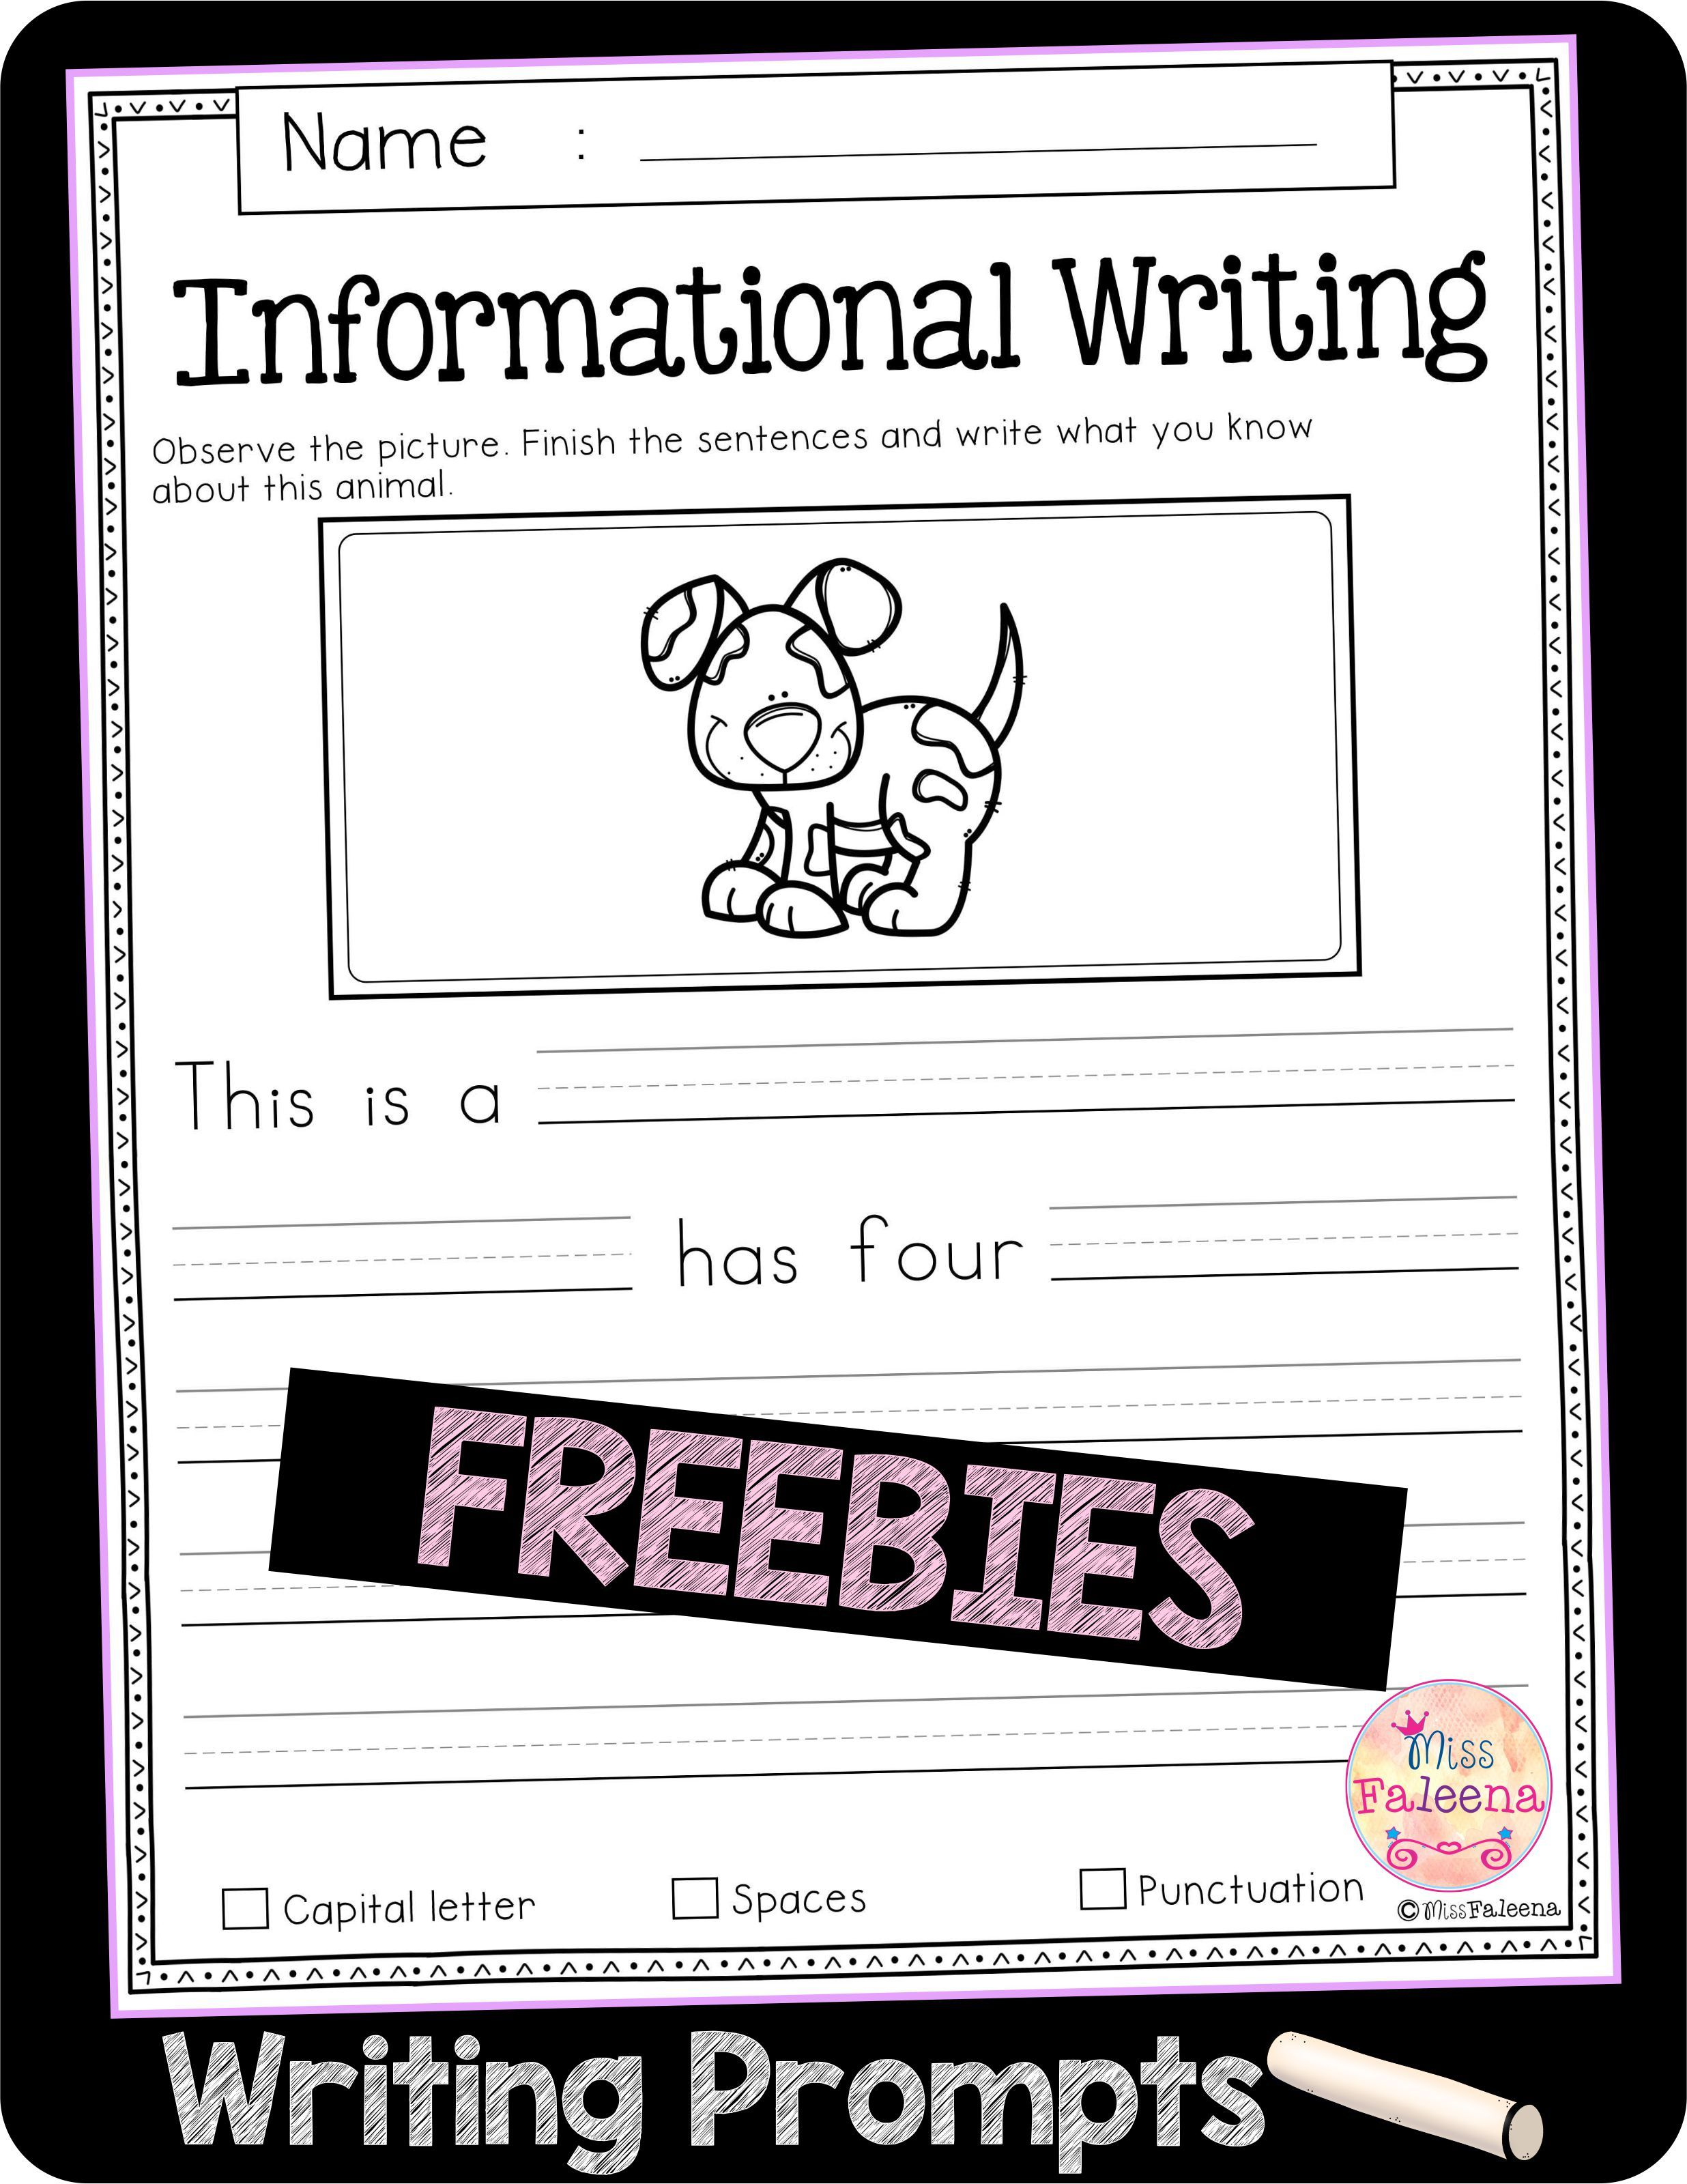 Free Writing Prompts Di